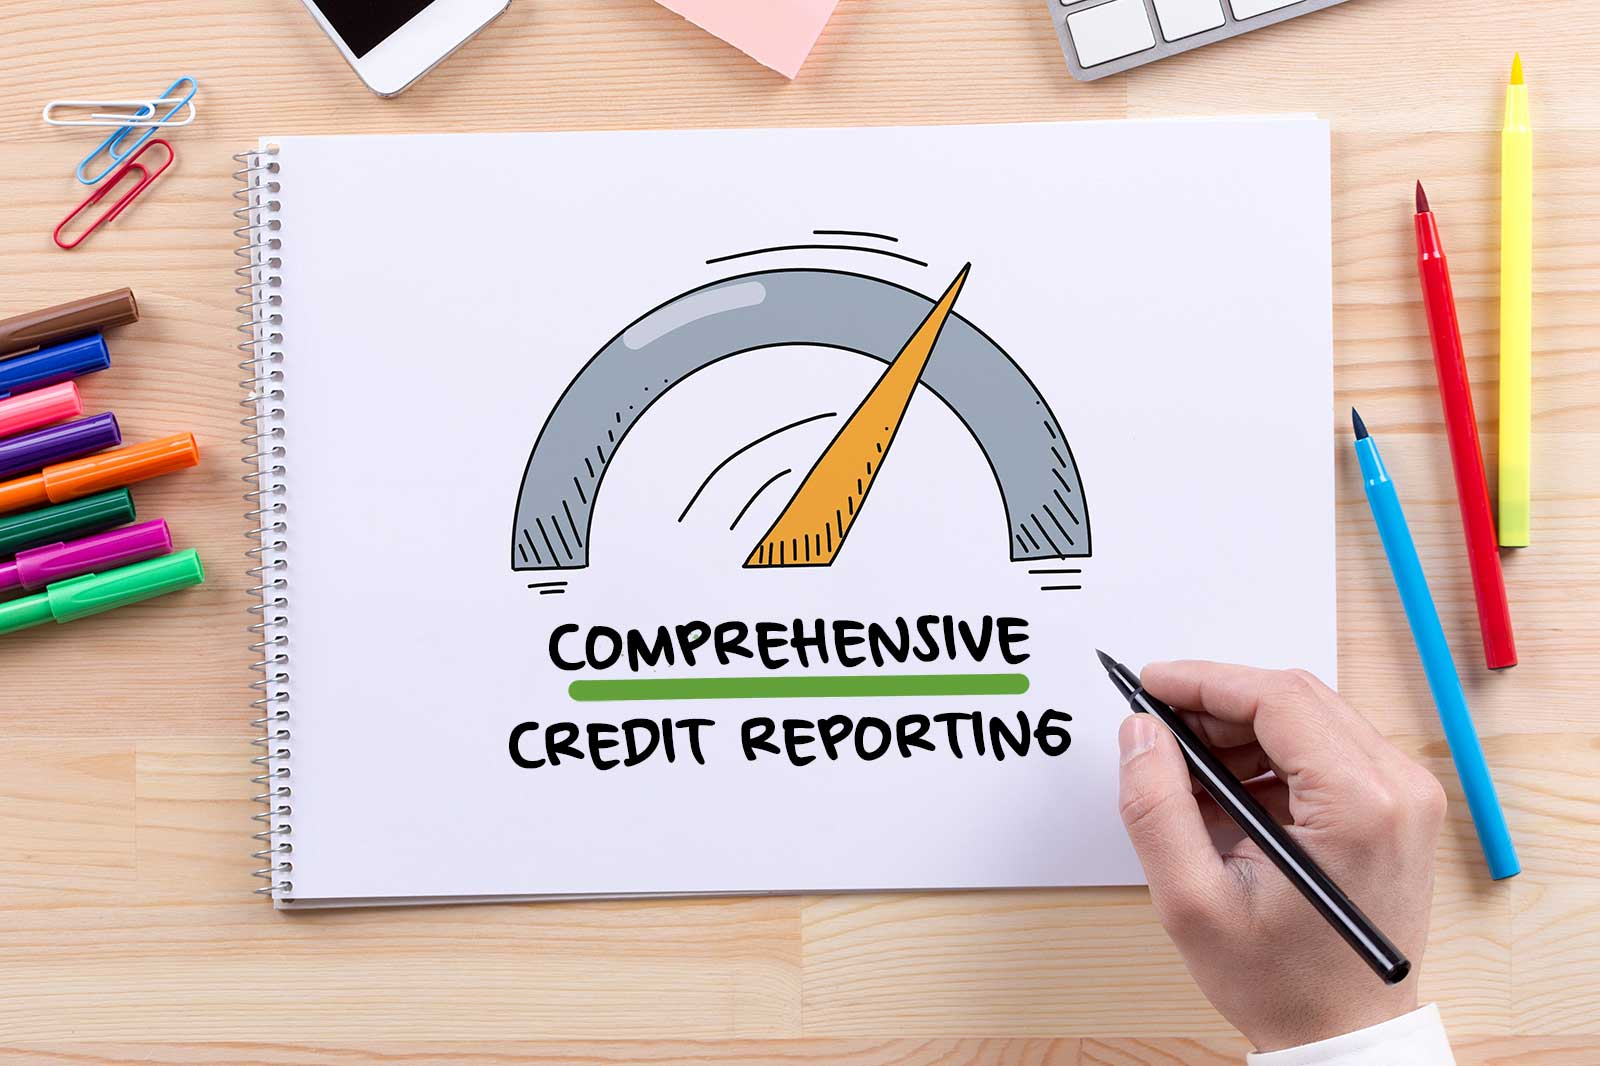 What is Comprehensive Credit Reporting